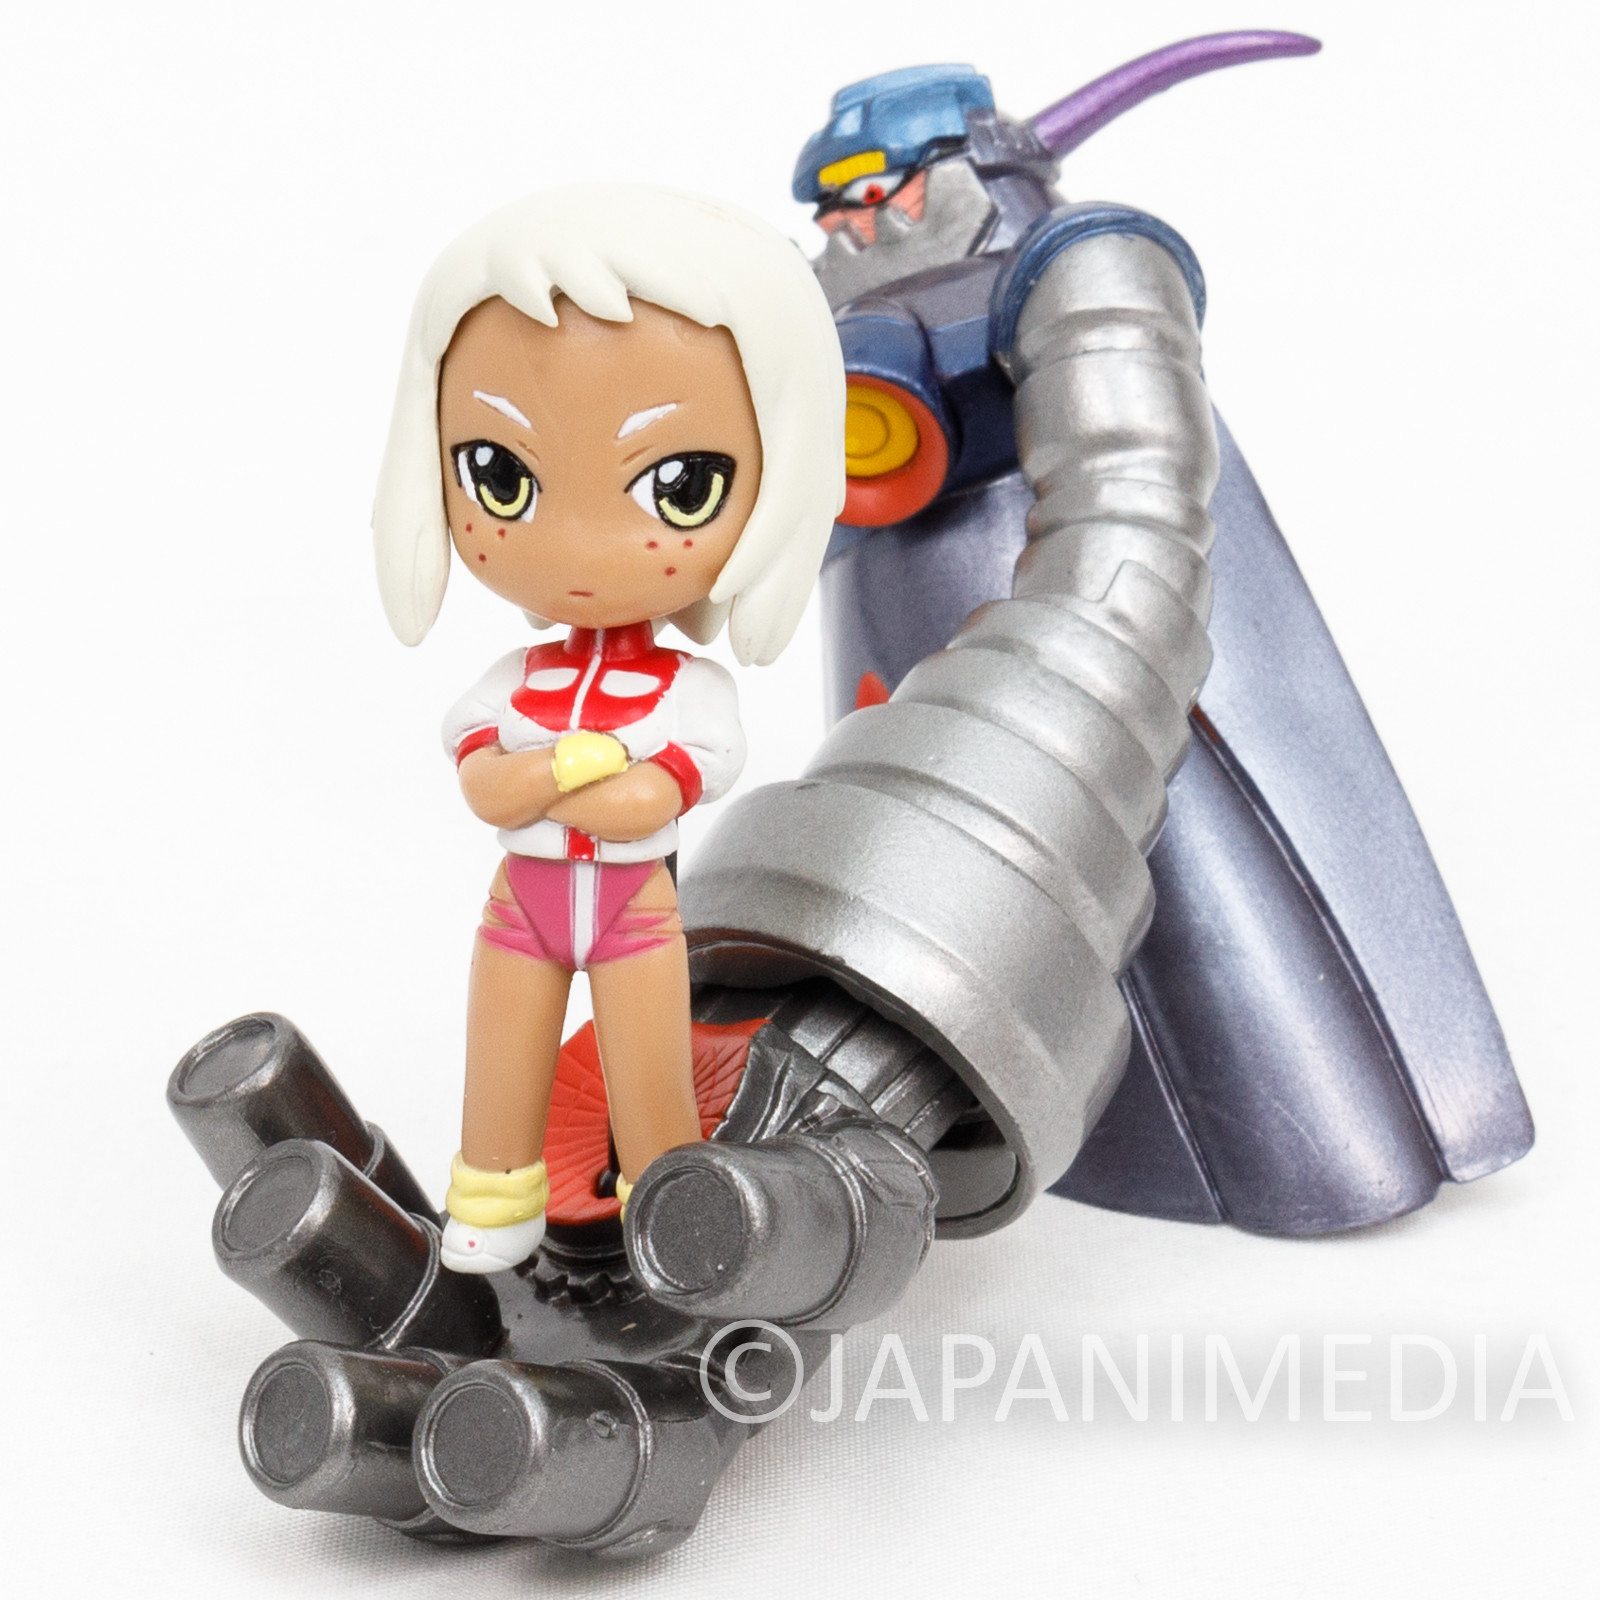 Diebuster Aim For the Top 2! Lal'c on Dix-Neuf Mini Figure GAINAX GUNBUSTER